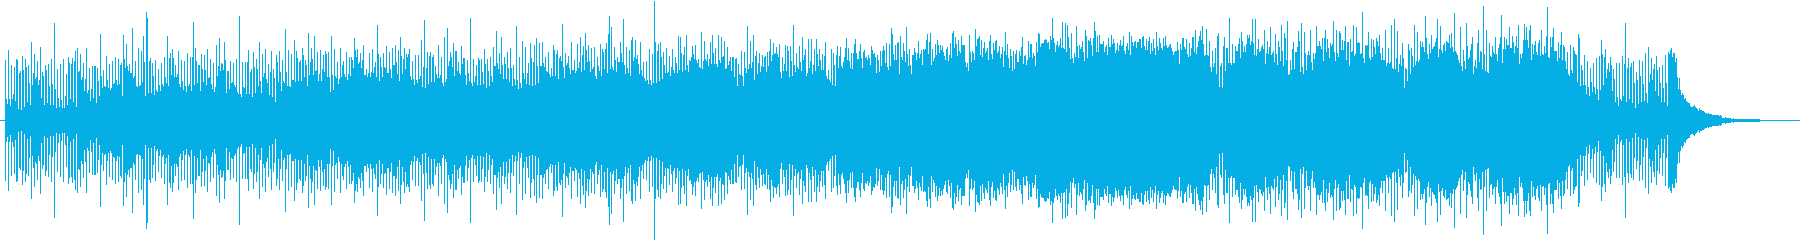 Orchestra with a characteristic feeling of running guitar's reproduced waveform